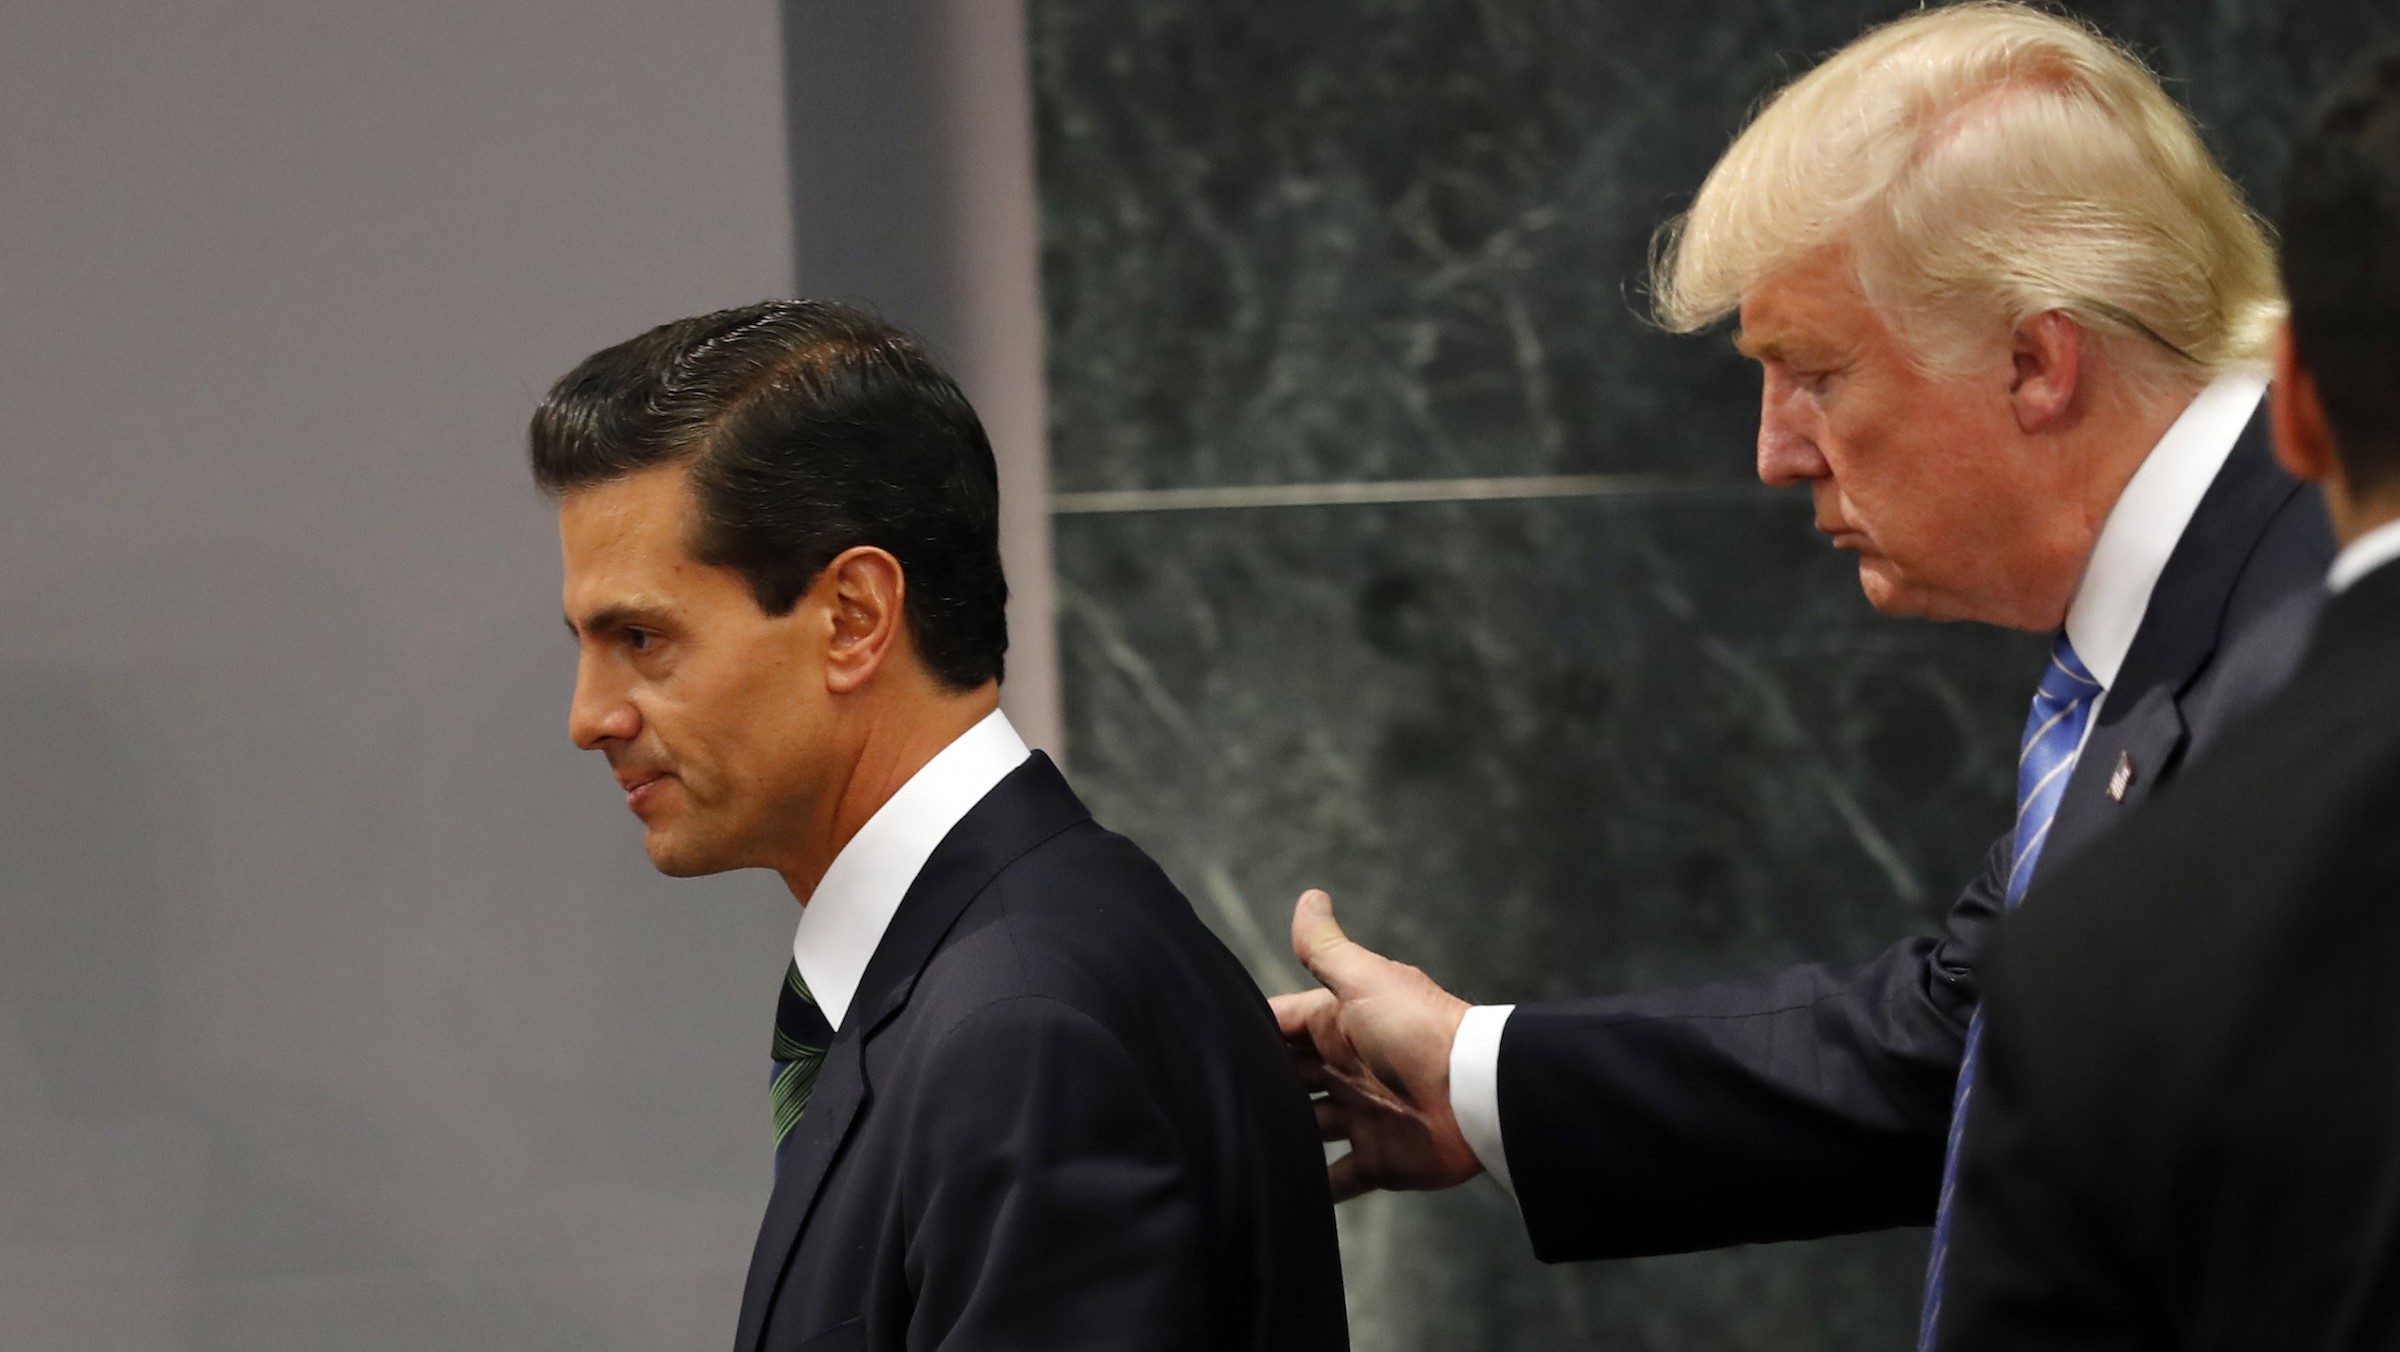 Trump's humiliating visit could doom Mexico's president and his party